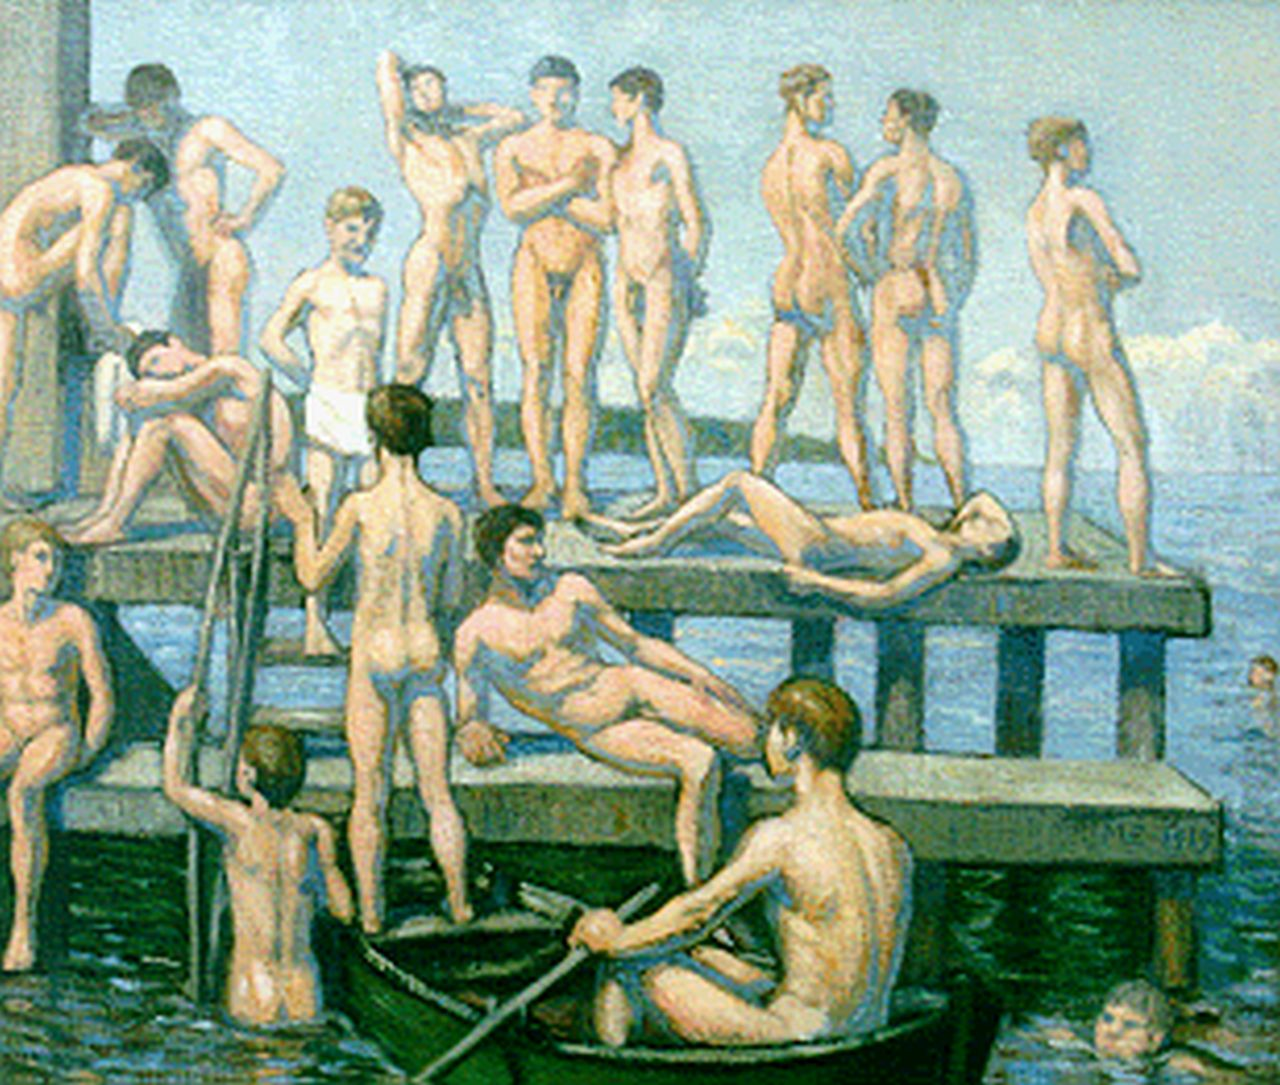 Malthe-Odin Engelsted | Bathing boys, oil on canvas, 66.5 x 78.3 cm, signed with monogram ME